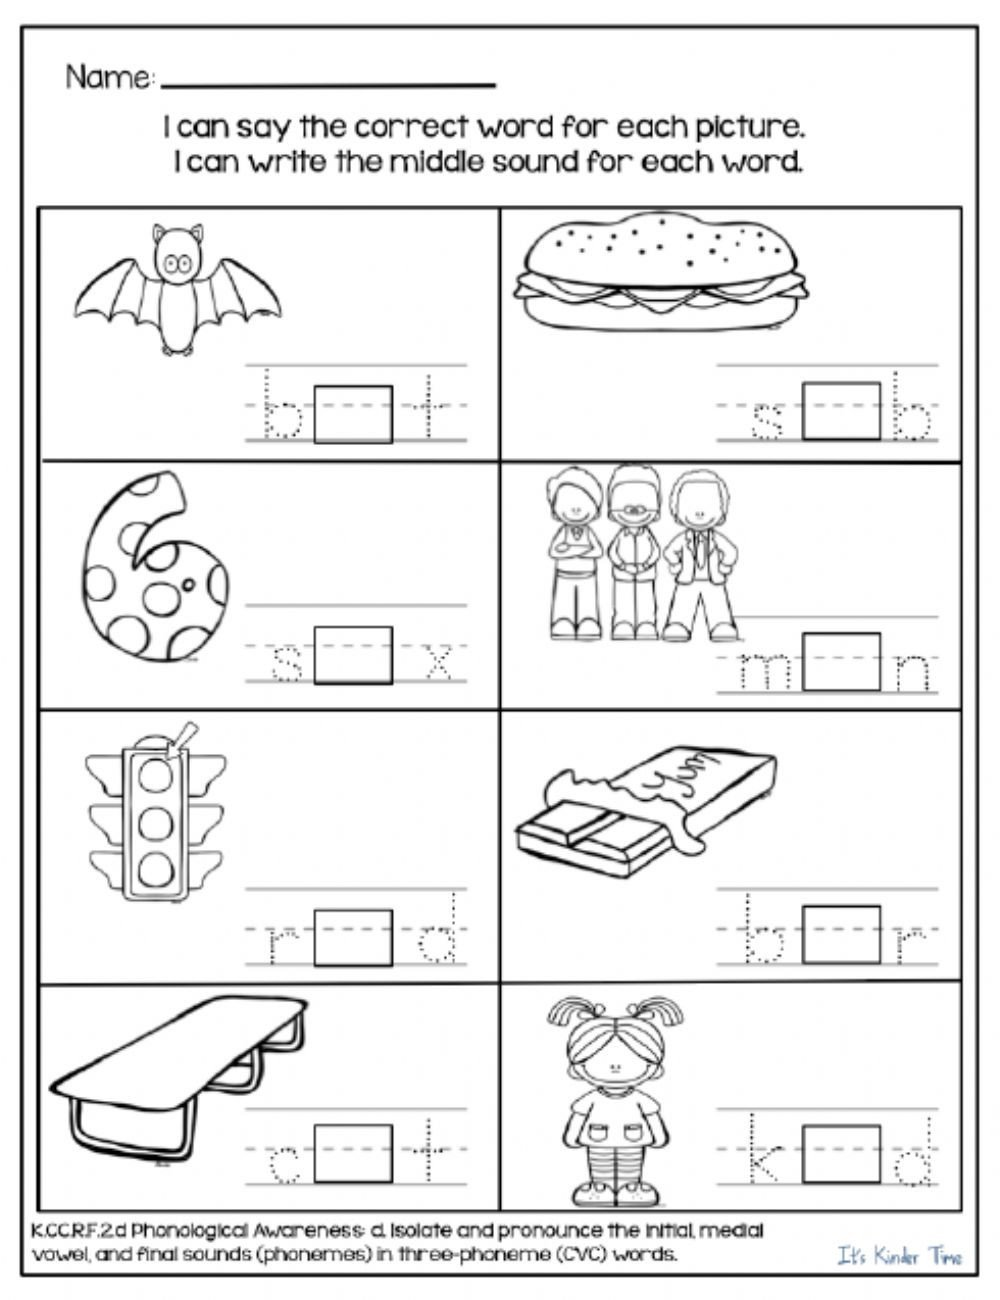 Middle sound Worksheets who S In the Middle Interactive Worksheet